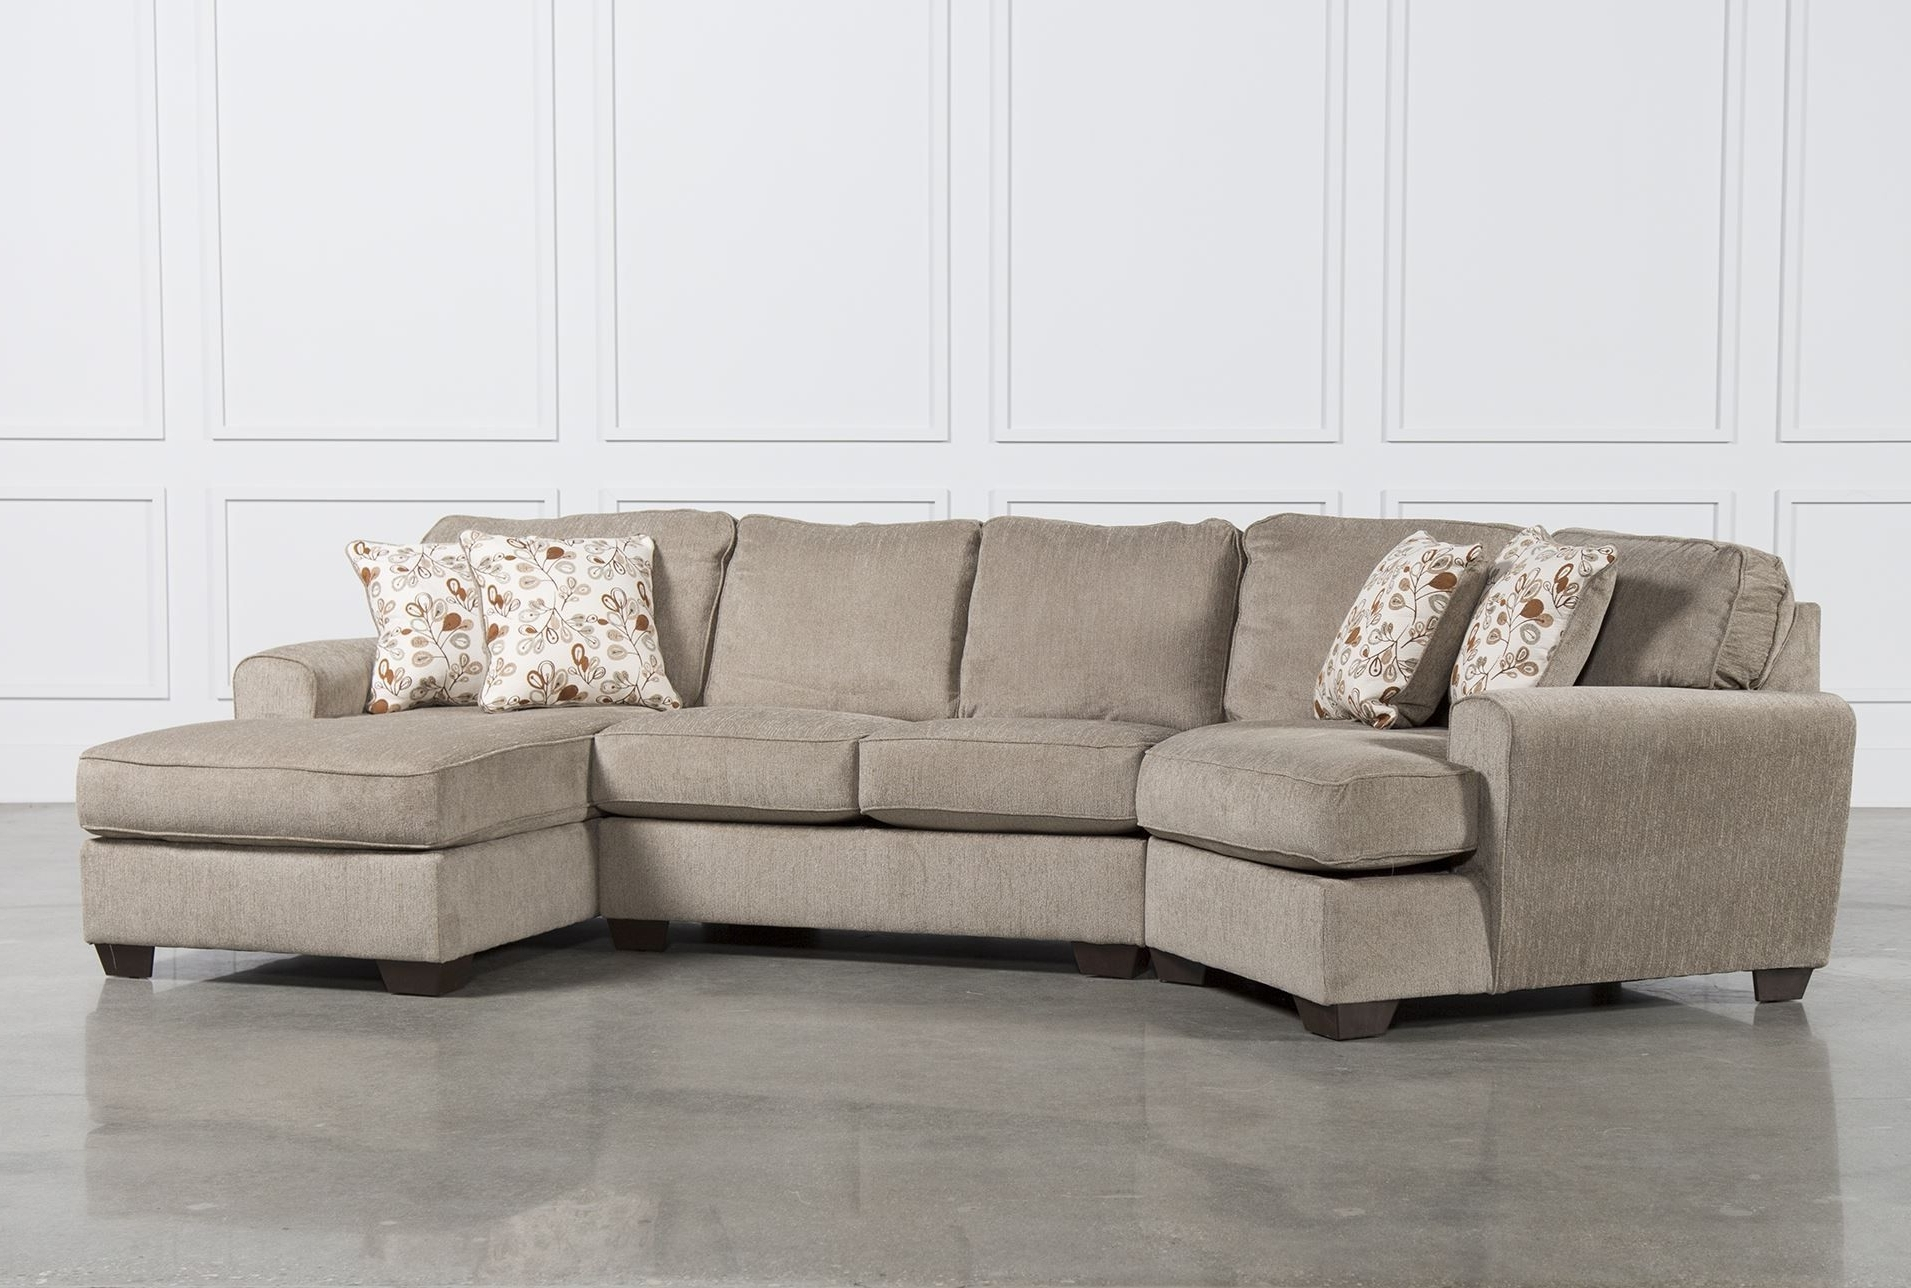 Cuddler Sectional Sofas Pertaining To Fashionable Patola Park 3 Piece Cuddler Sectional W/raf Corner Chaise (View 8 of 20)